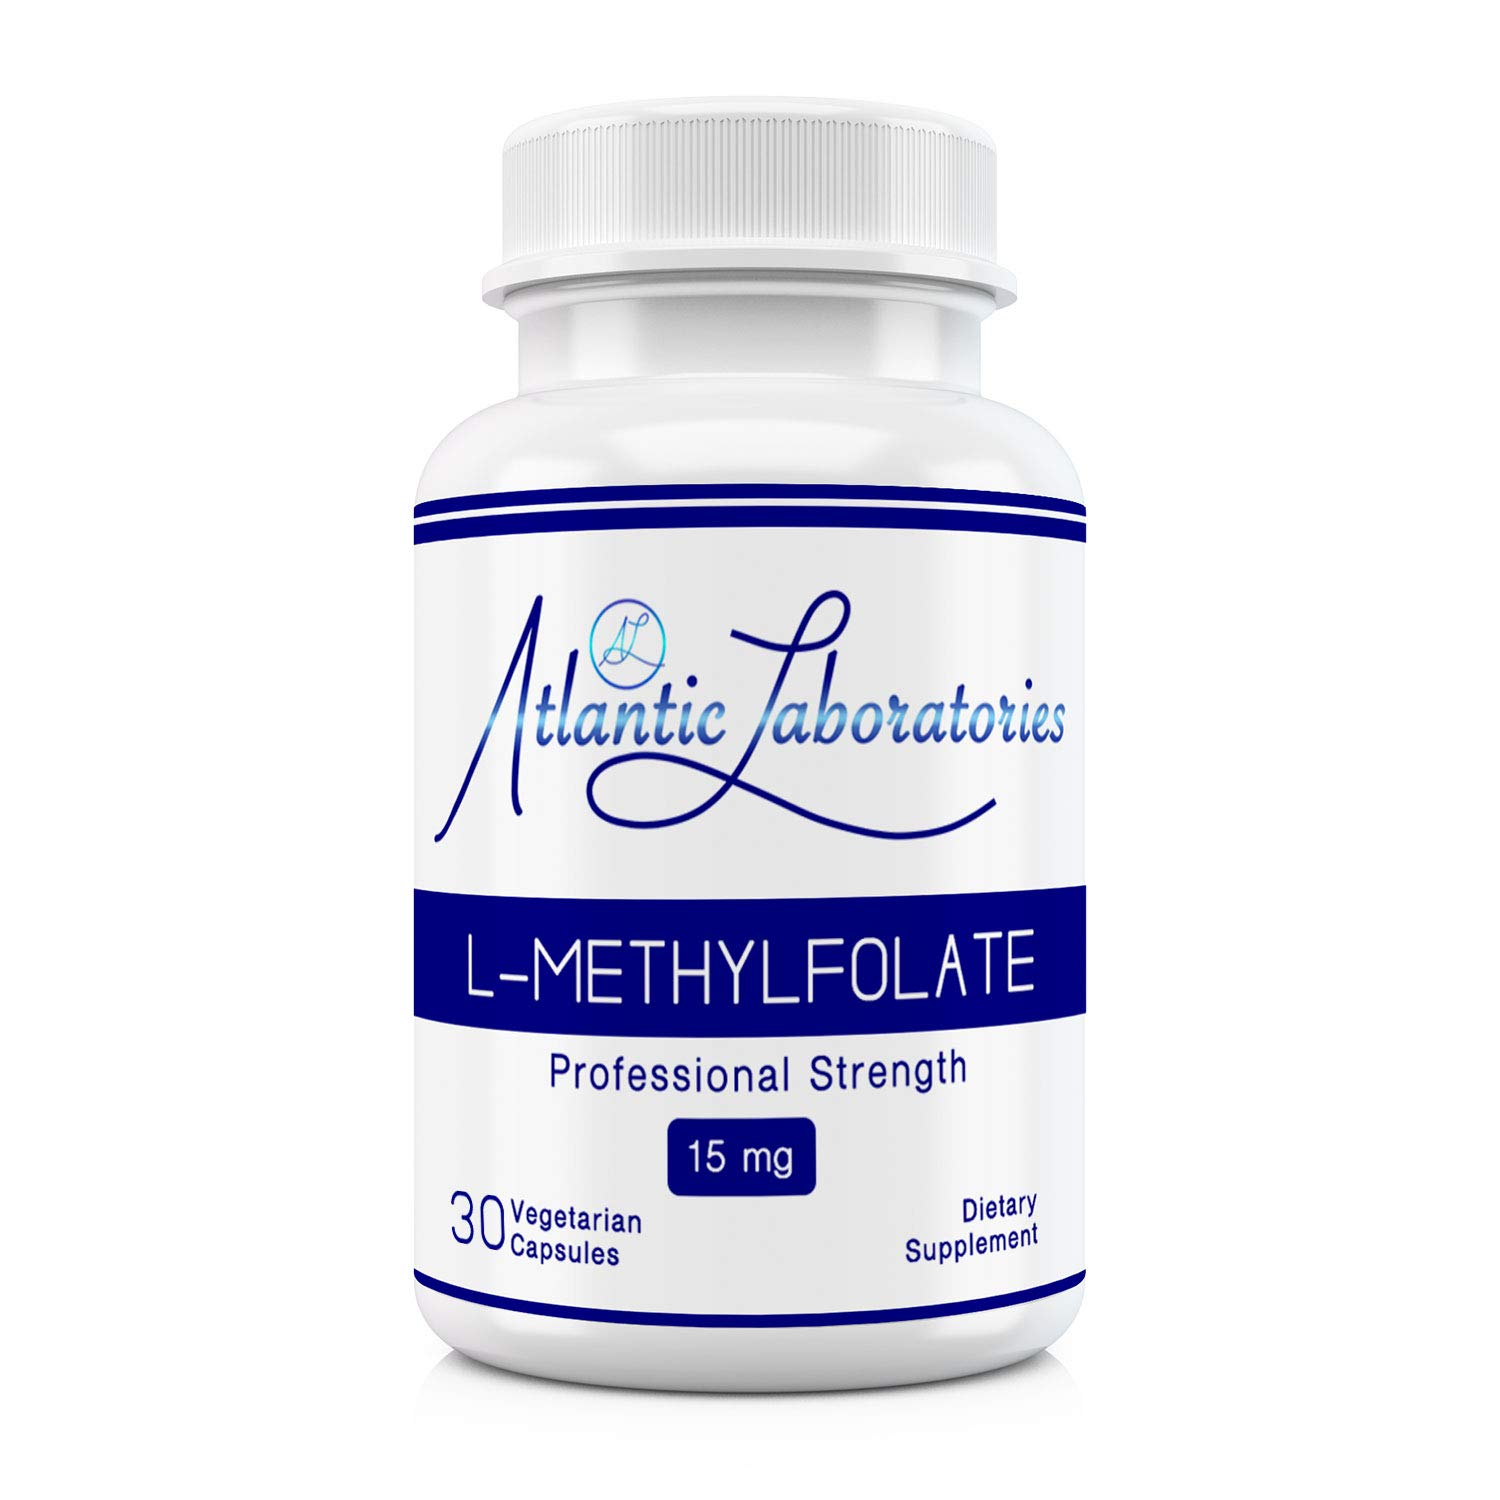 Atlantic Laboratories (5-MTHF) L-Methylfolate 15 mg - 15000 mcg - 30 Vegetarian Capsules - Professional Strength Active Folate, Filler & Gluten Free, Non-GMO by Atlantic Laboratories